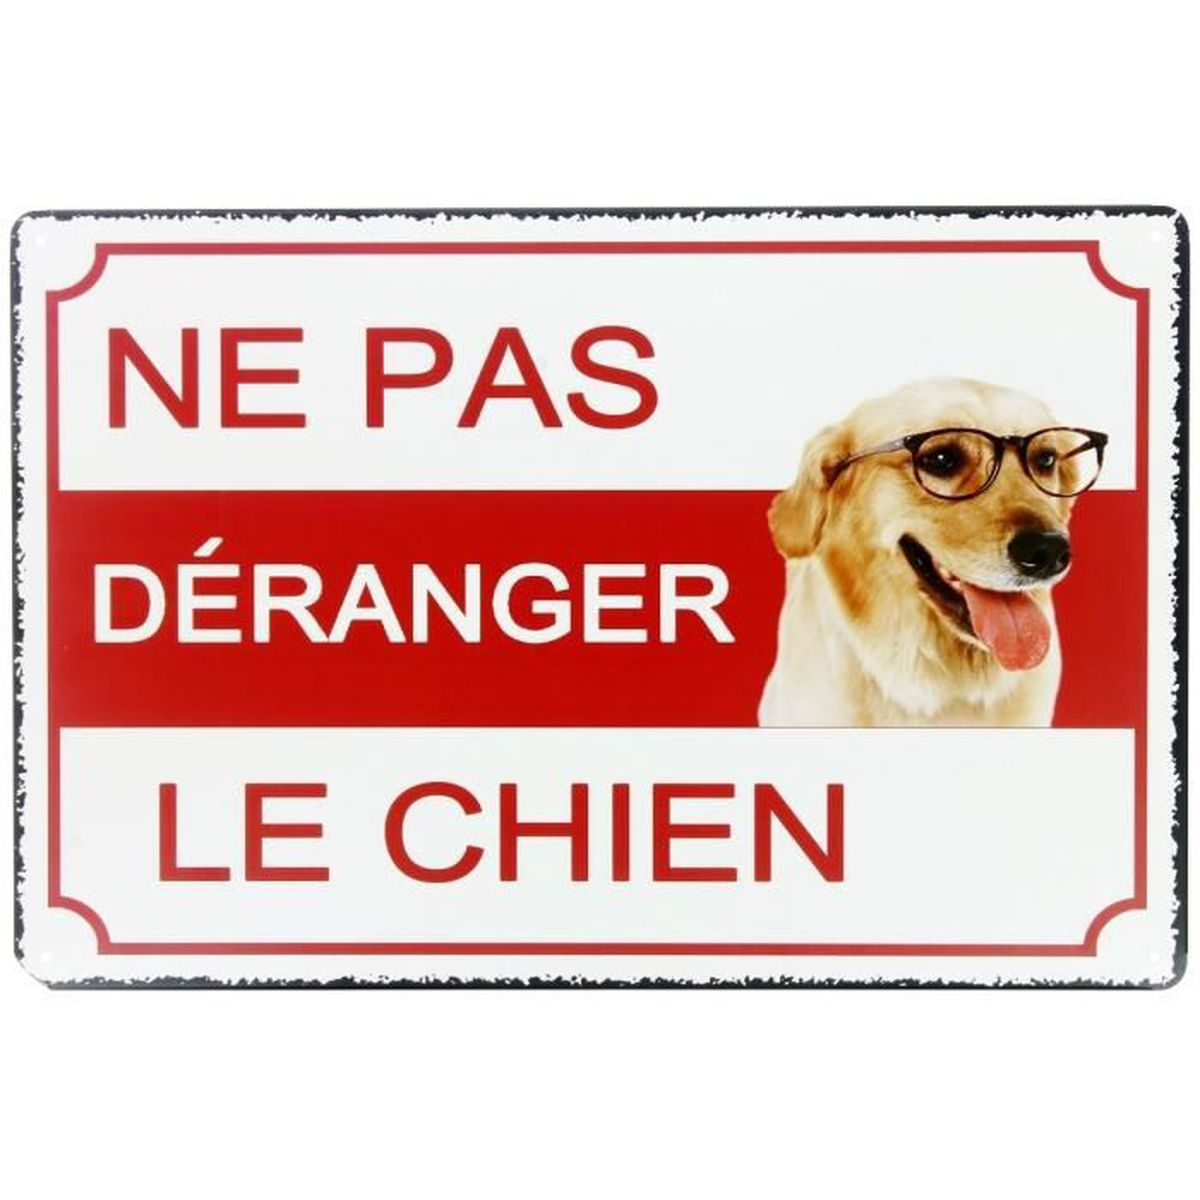 plaque mural panneau en m tal chien attention danger design humour ne pas d ranger 20 x 20cm. Black Bedroom Furniture Sets. Home Design Ideas